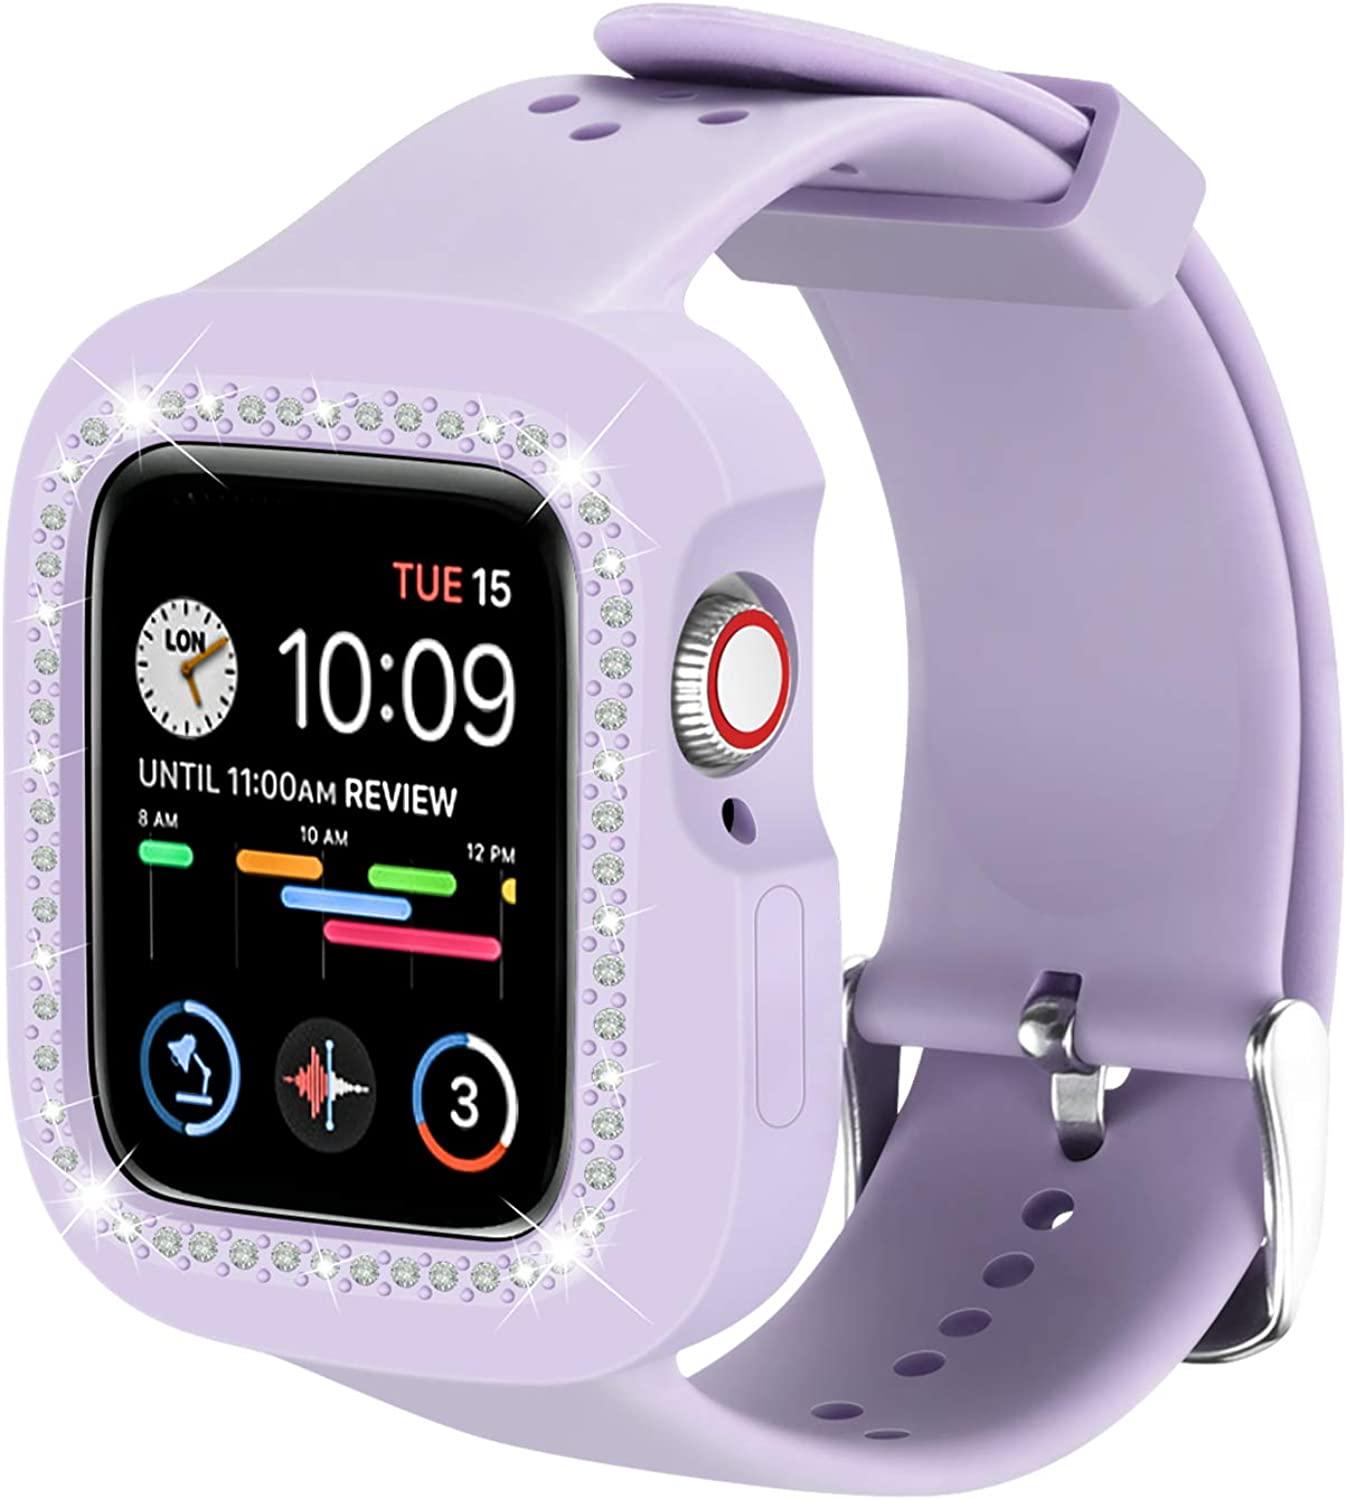 I Watch Bands 40mm Compatible with Apple Watch, ZHMM Bling Diamond Apple Watch Band Designed for Women Protect Cover and Soft Silicone for 40mm Apple Watch Series 6/5/4 SE